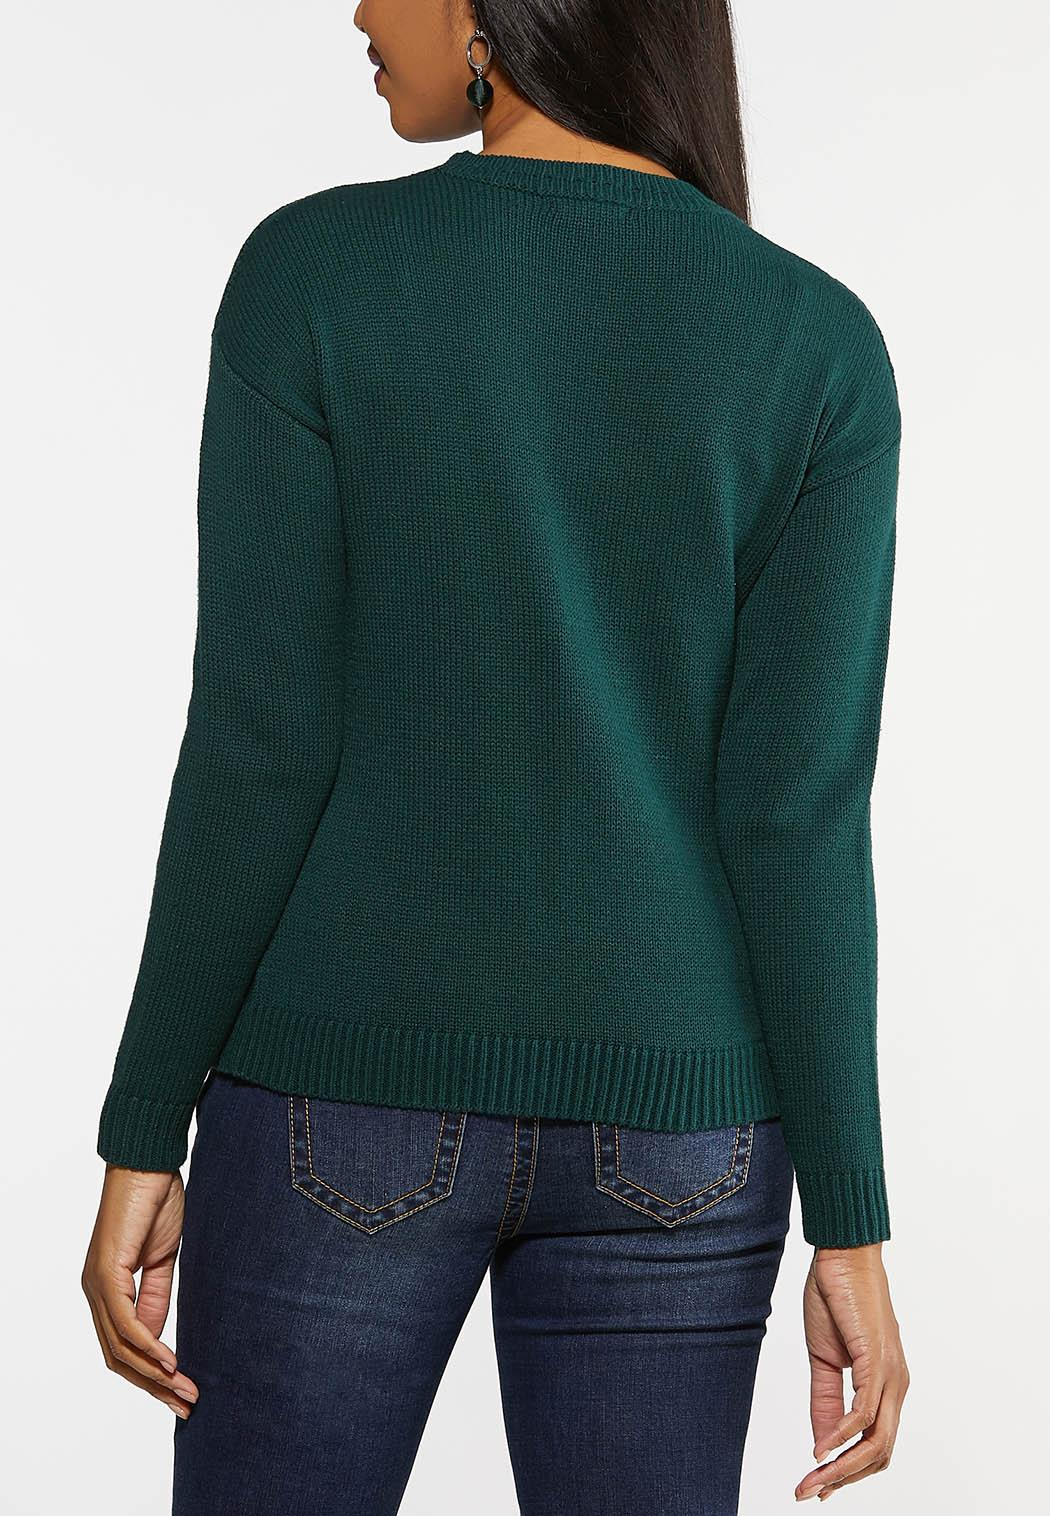 Green Cable Knit Sweater (Item #44027971)